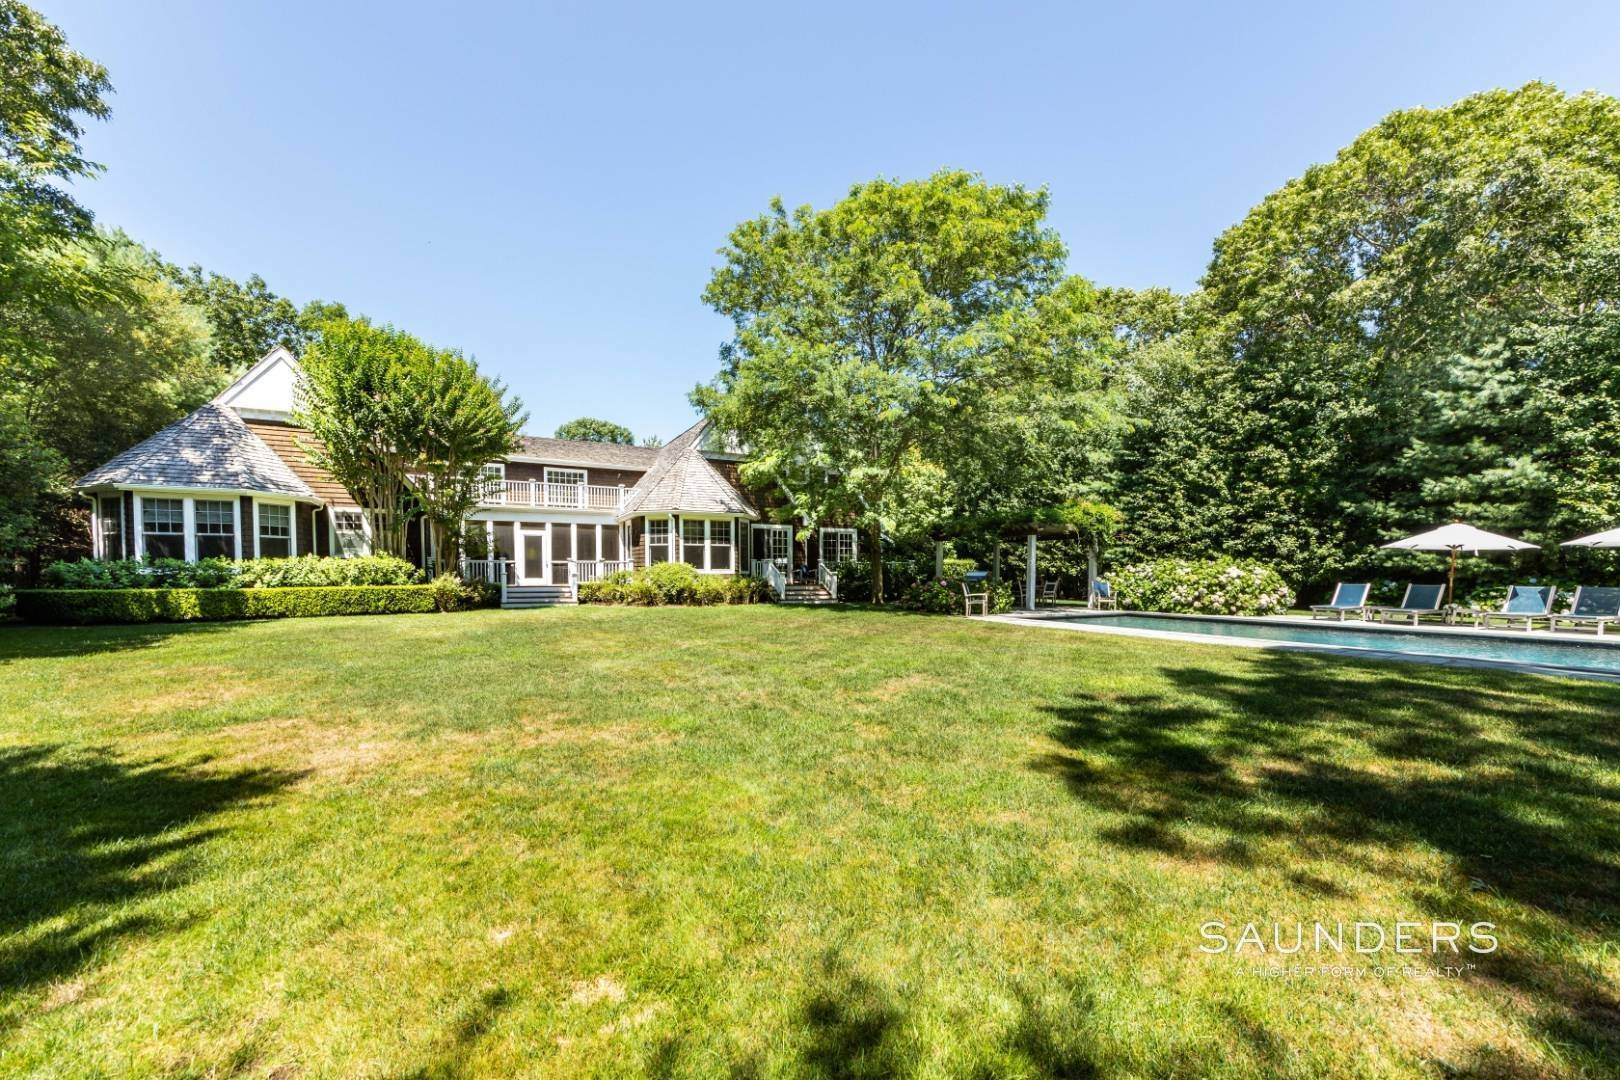 24. Single Family Homes for Sale at Wainscott South Traditional Near Beach Lane 10 Merriwood Drive, Wainscott, East Hampton Town, NY 11975